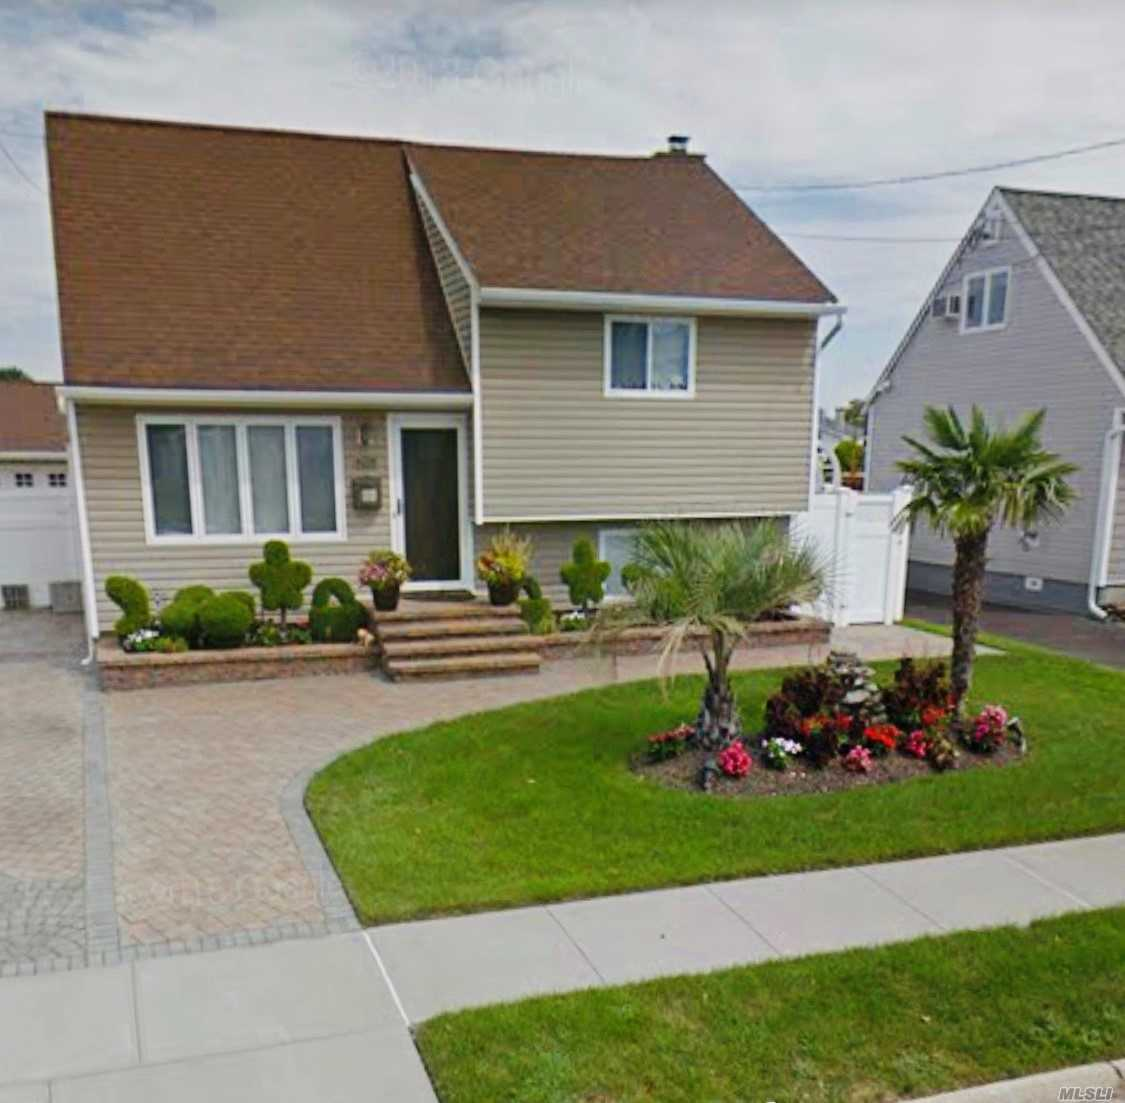 Beautiful Updated Waterfront Split Located On Extra Wide/Deep Canal Seconds To Theopen Bay Across From Copiague Harbor. 3 Bedroom (Master Has Custom Built Ins For Plenty Storage), 2 Full Baths, New Granite Eik With Stainless Steal Appliances W/ Pella Sliders To Bayckyard , L/R, F/R All With Radiant Floor Heating, Seperate Outside Entrance, Paver Driveway And Backyard, Professionally Landscaped, Palm Trees, Above Ground Pool Summer Oasis Right In Your Backyard, 1.5 Car Garage W/Seperate Storage Area